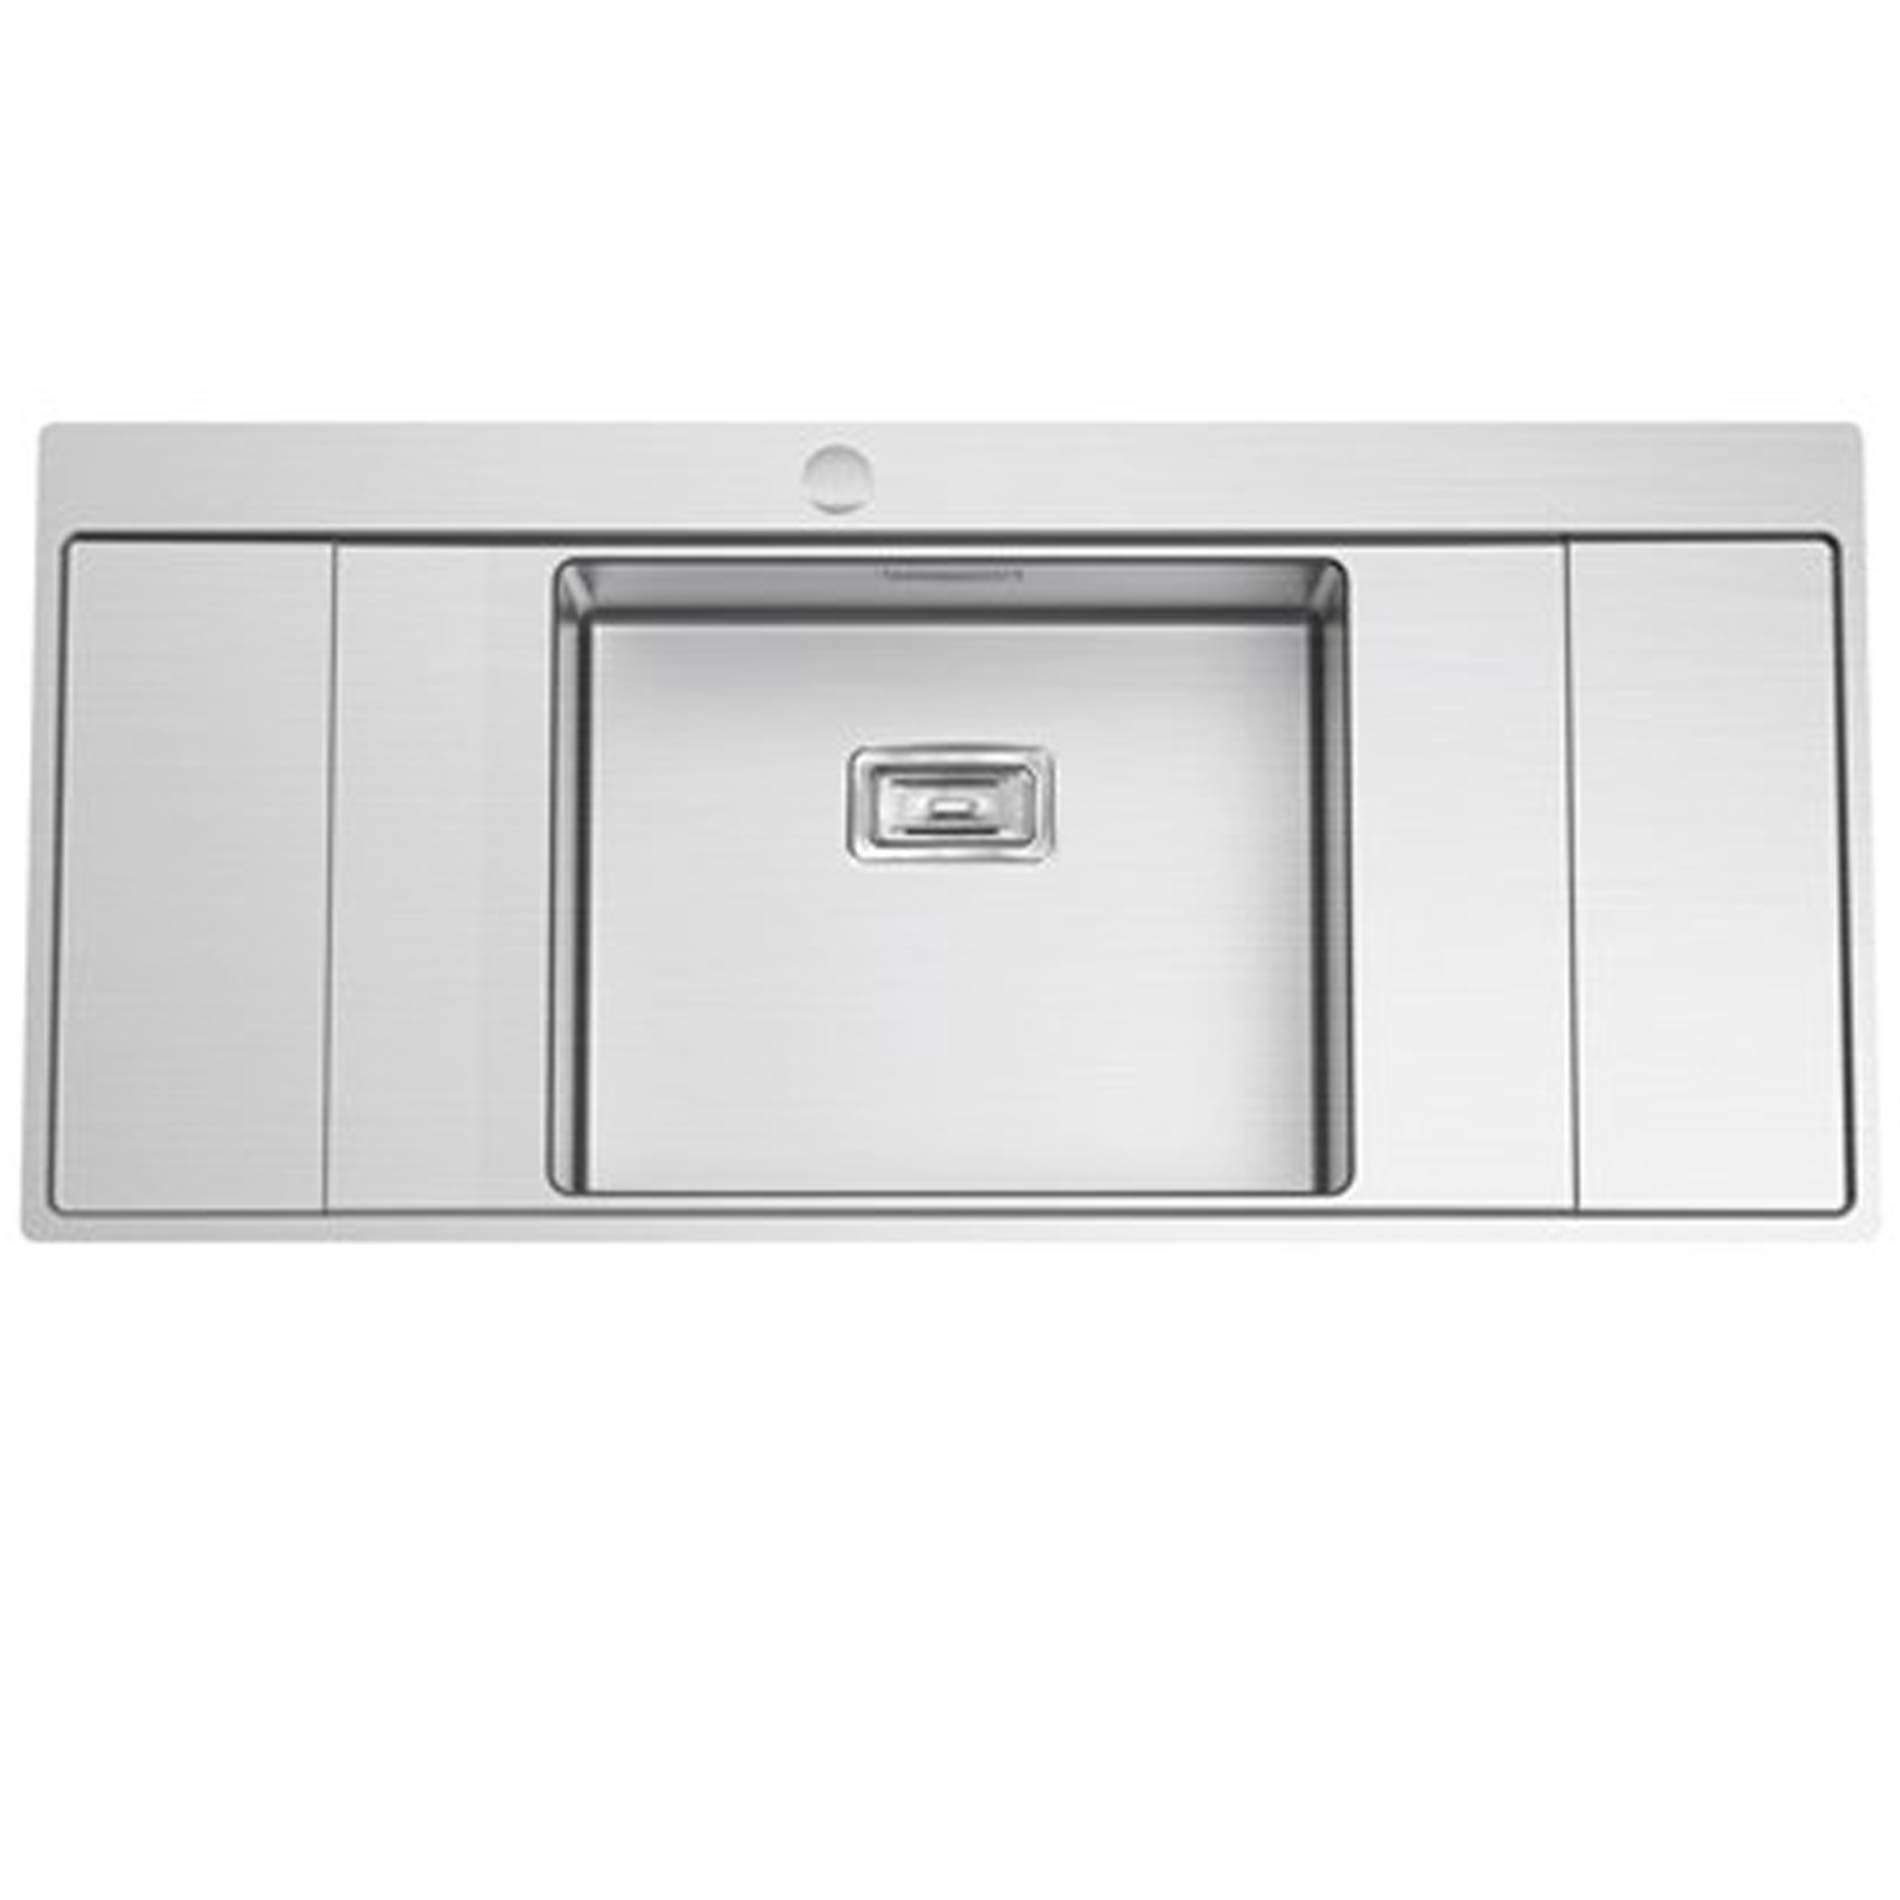 Picture Of Xeron B50 Single Bowl Stainless Steel Sink